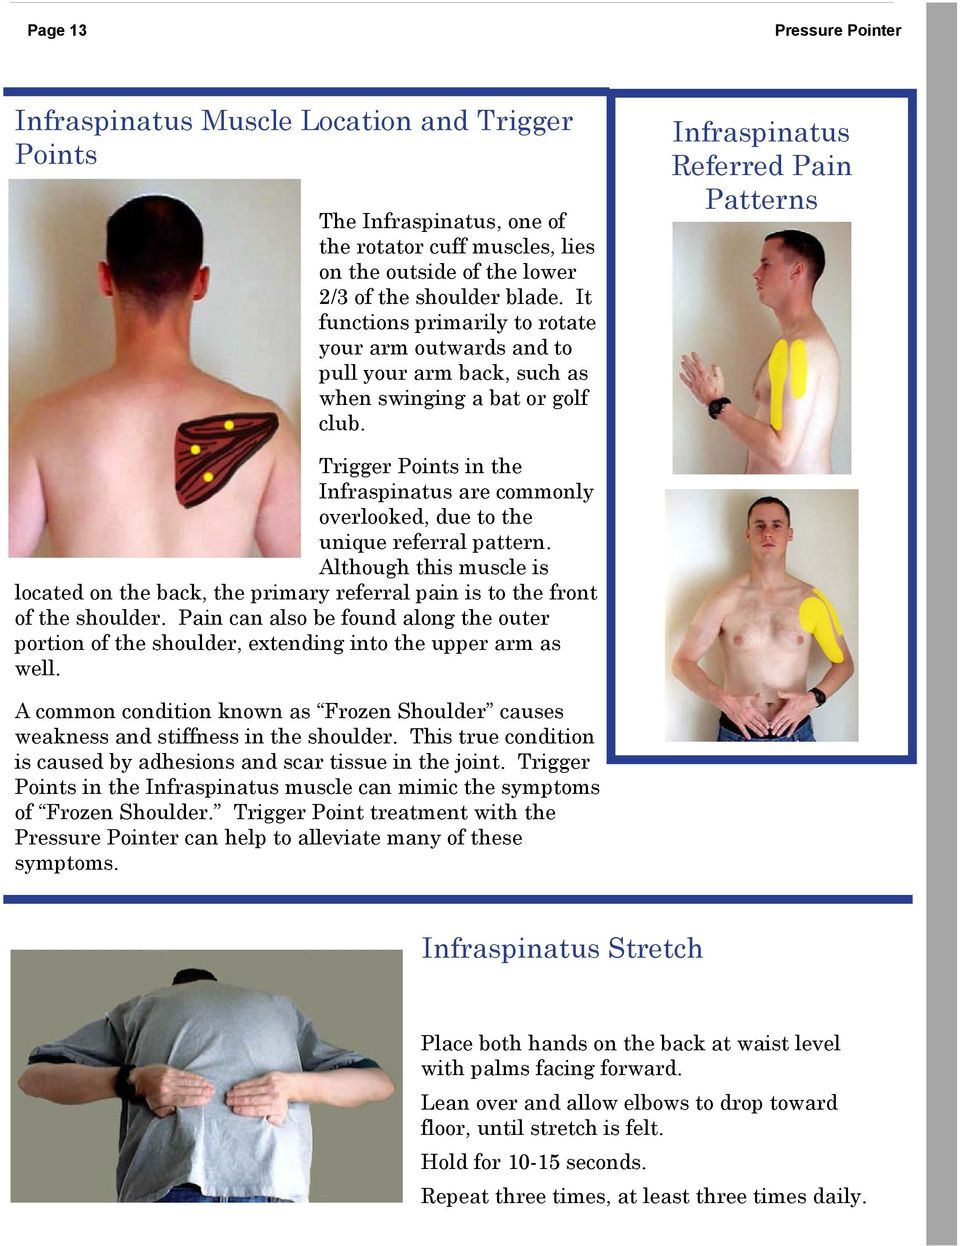 Infraspinatus Referred Pain Patterns Trigger Points in the Infraspinatus are commonly overlooked, due to the unique referral pattern.